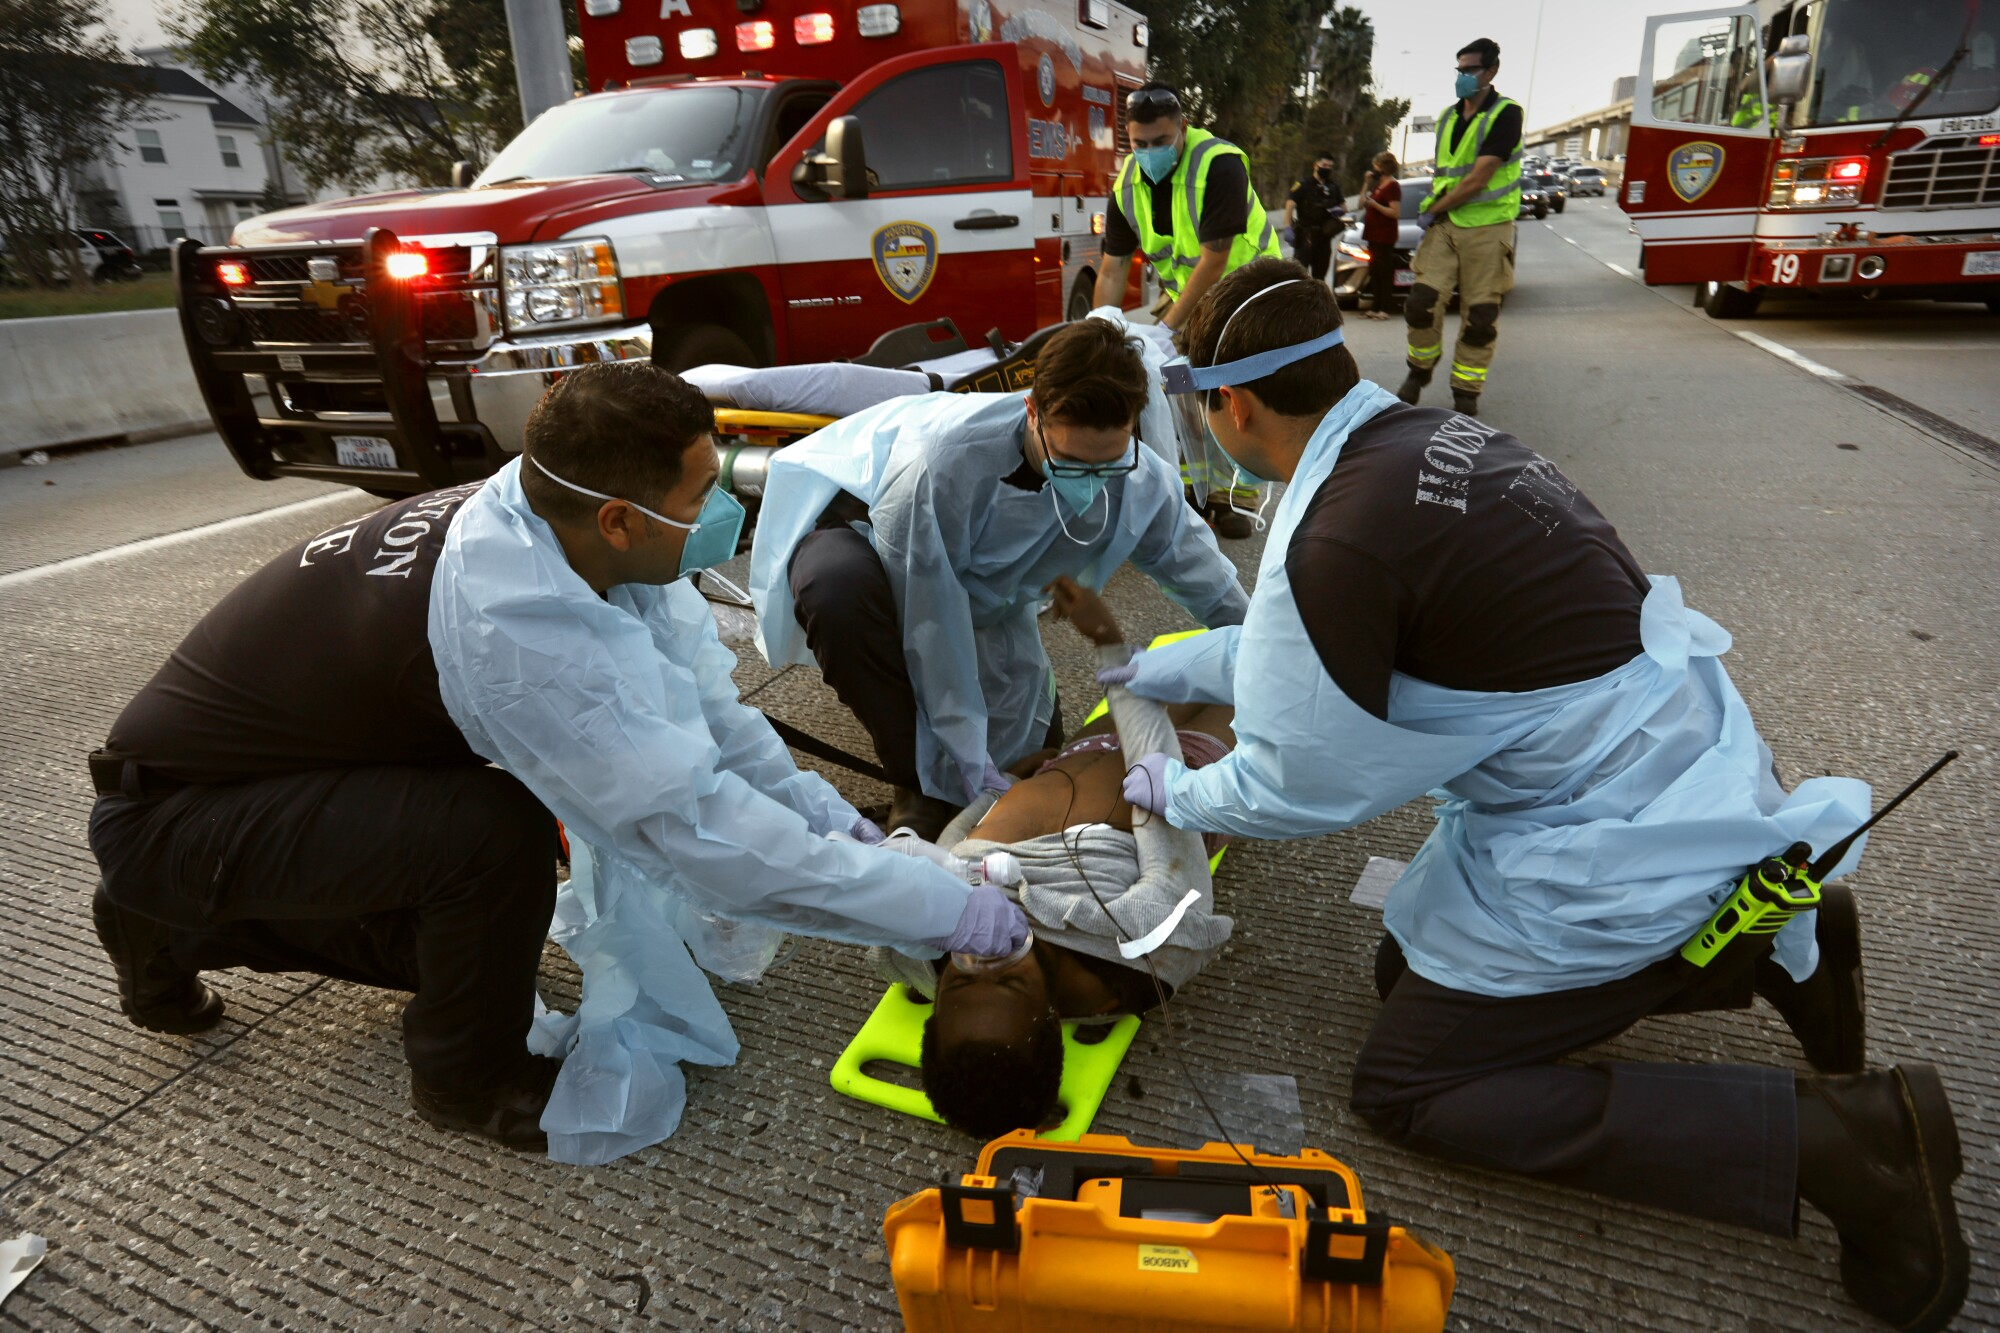 Fire Capt. Daniel Soto, center, supervises as firefighters treat a man struck by a car Nov. 22 in Houston.